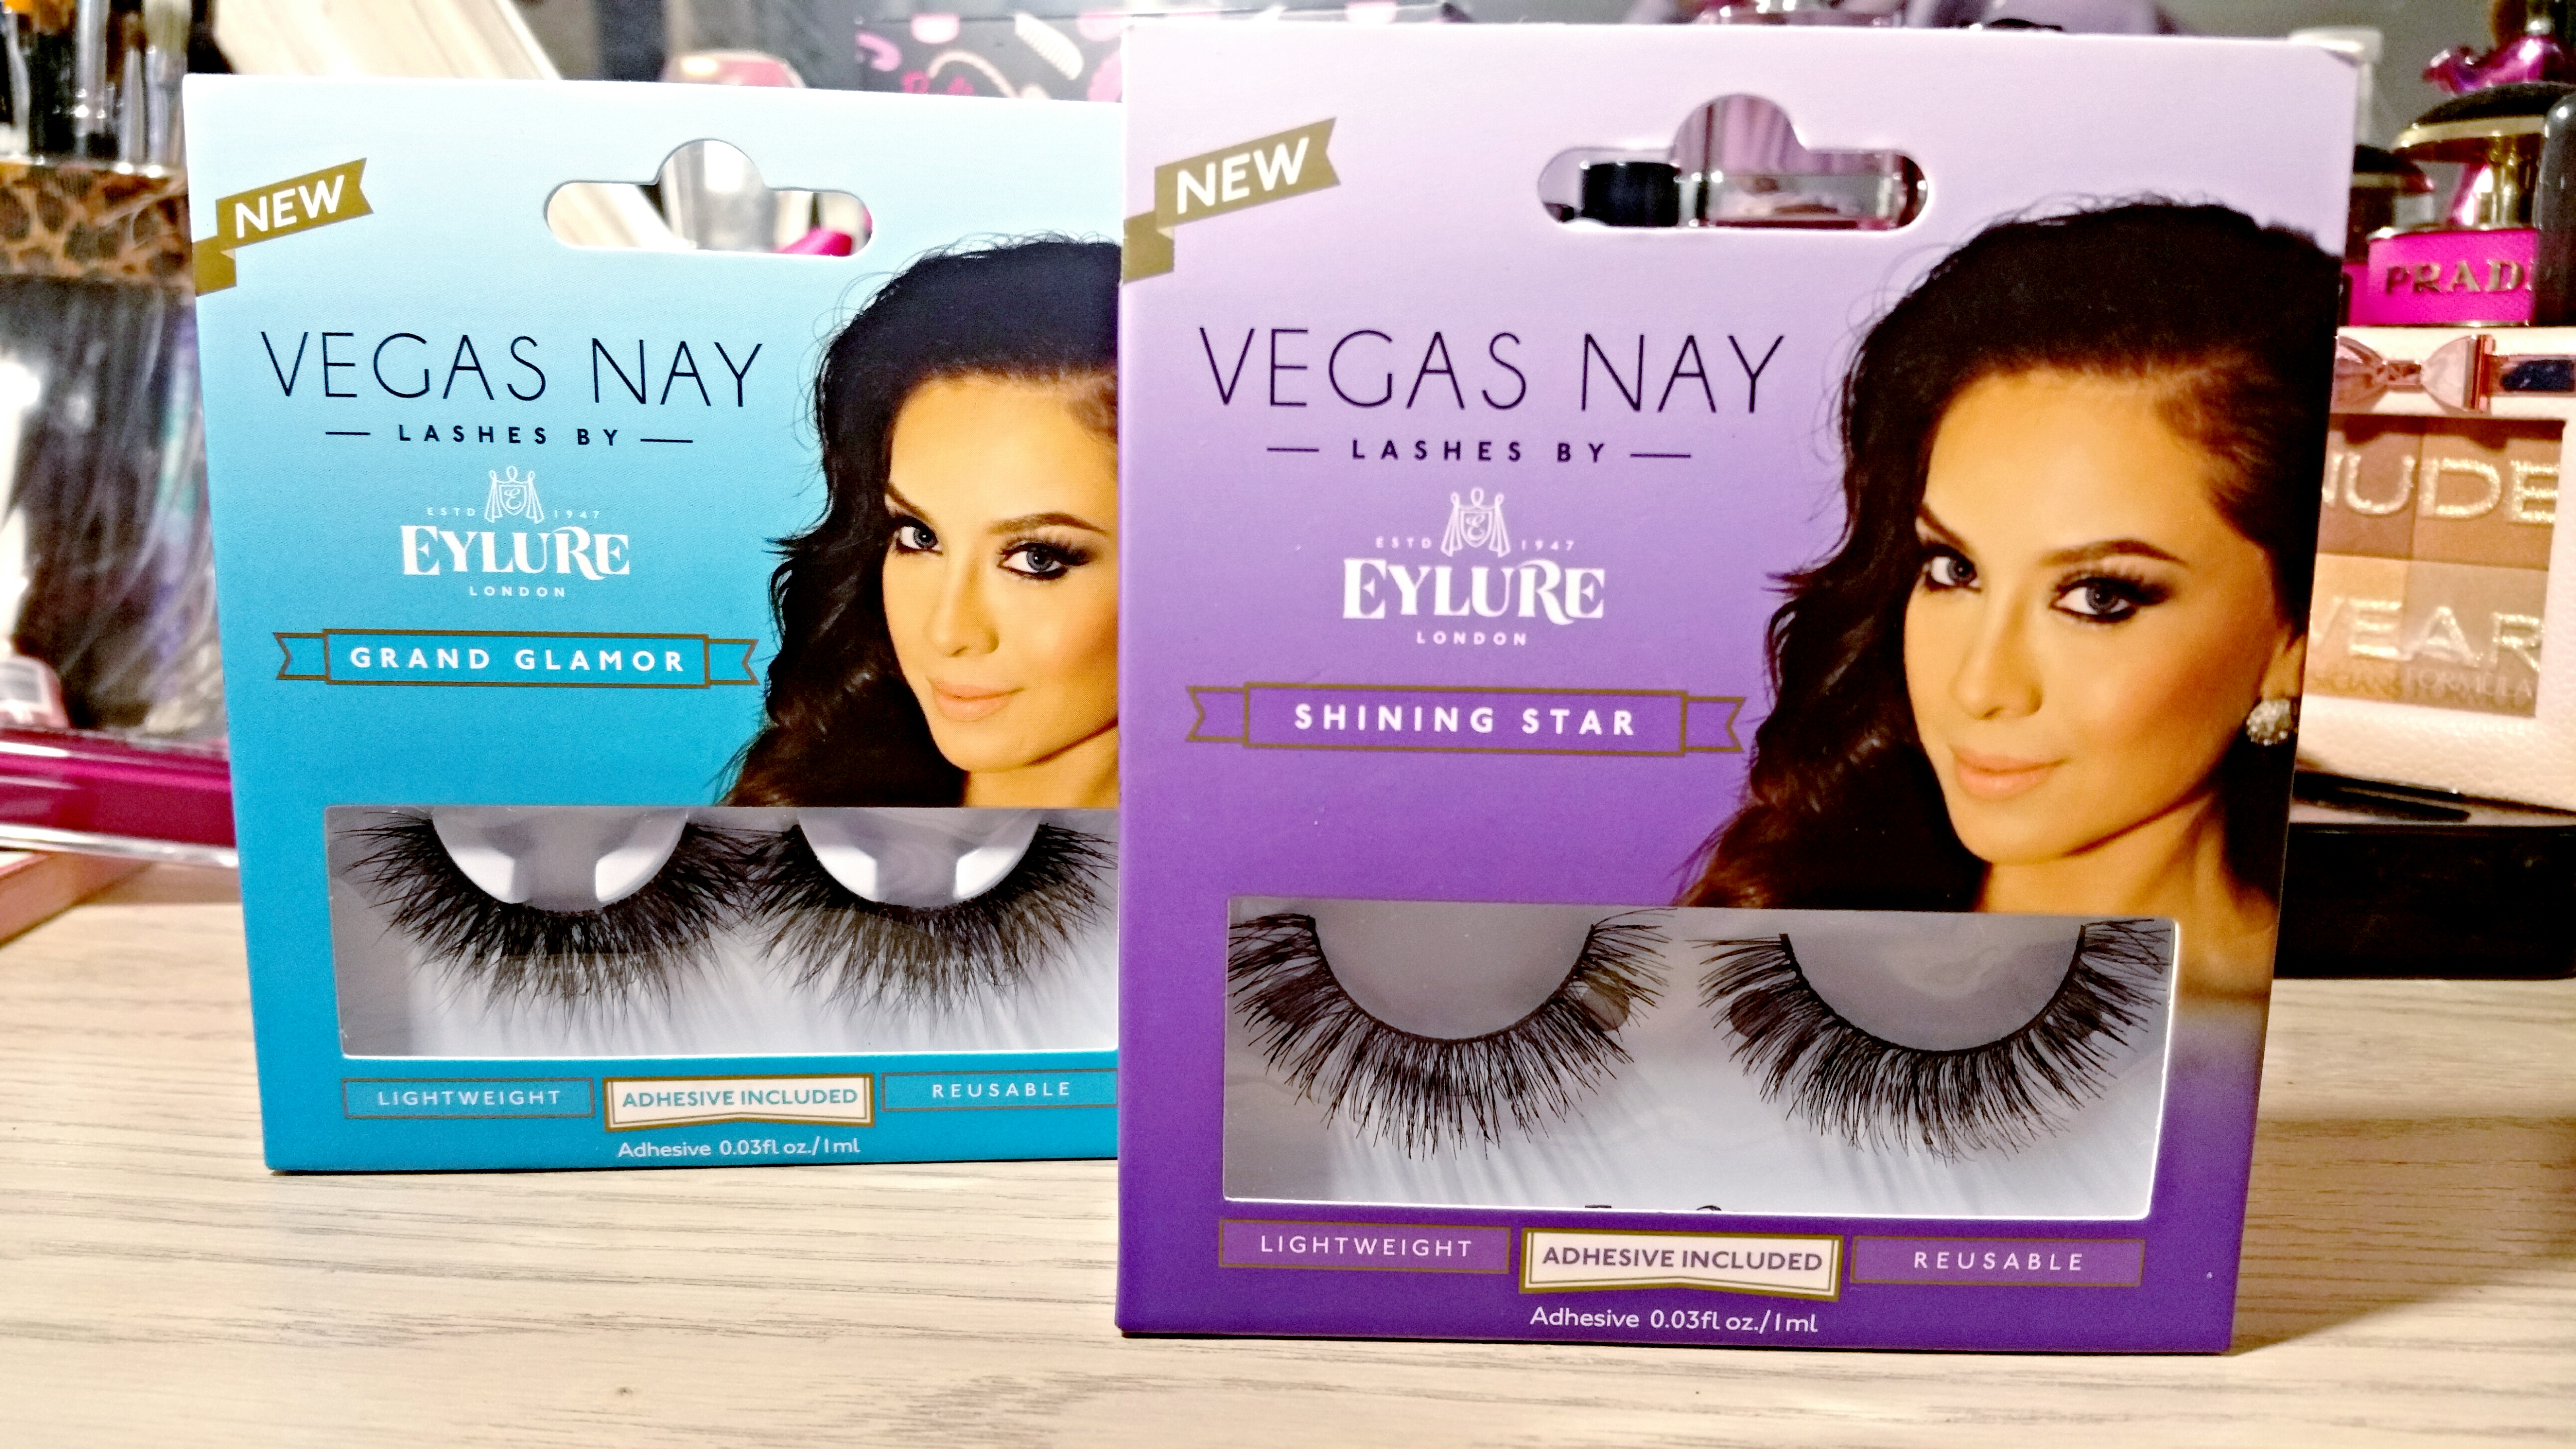 667941ab285 Calling all lash lovers! I came across the most lusciously gorgeous lashes  at Target that you have to check out. It's the new Vegas Nay line for Eylure  and ...